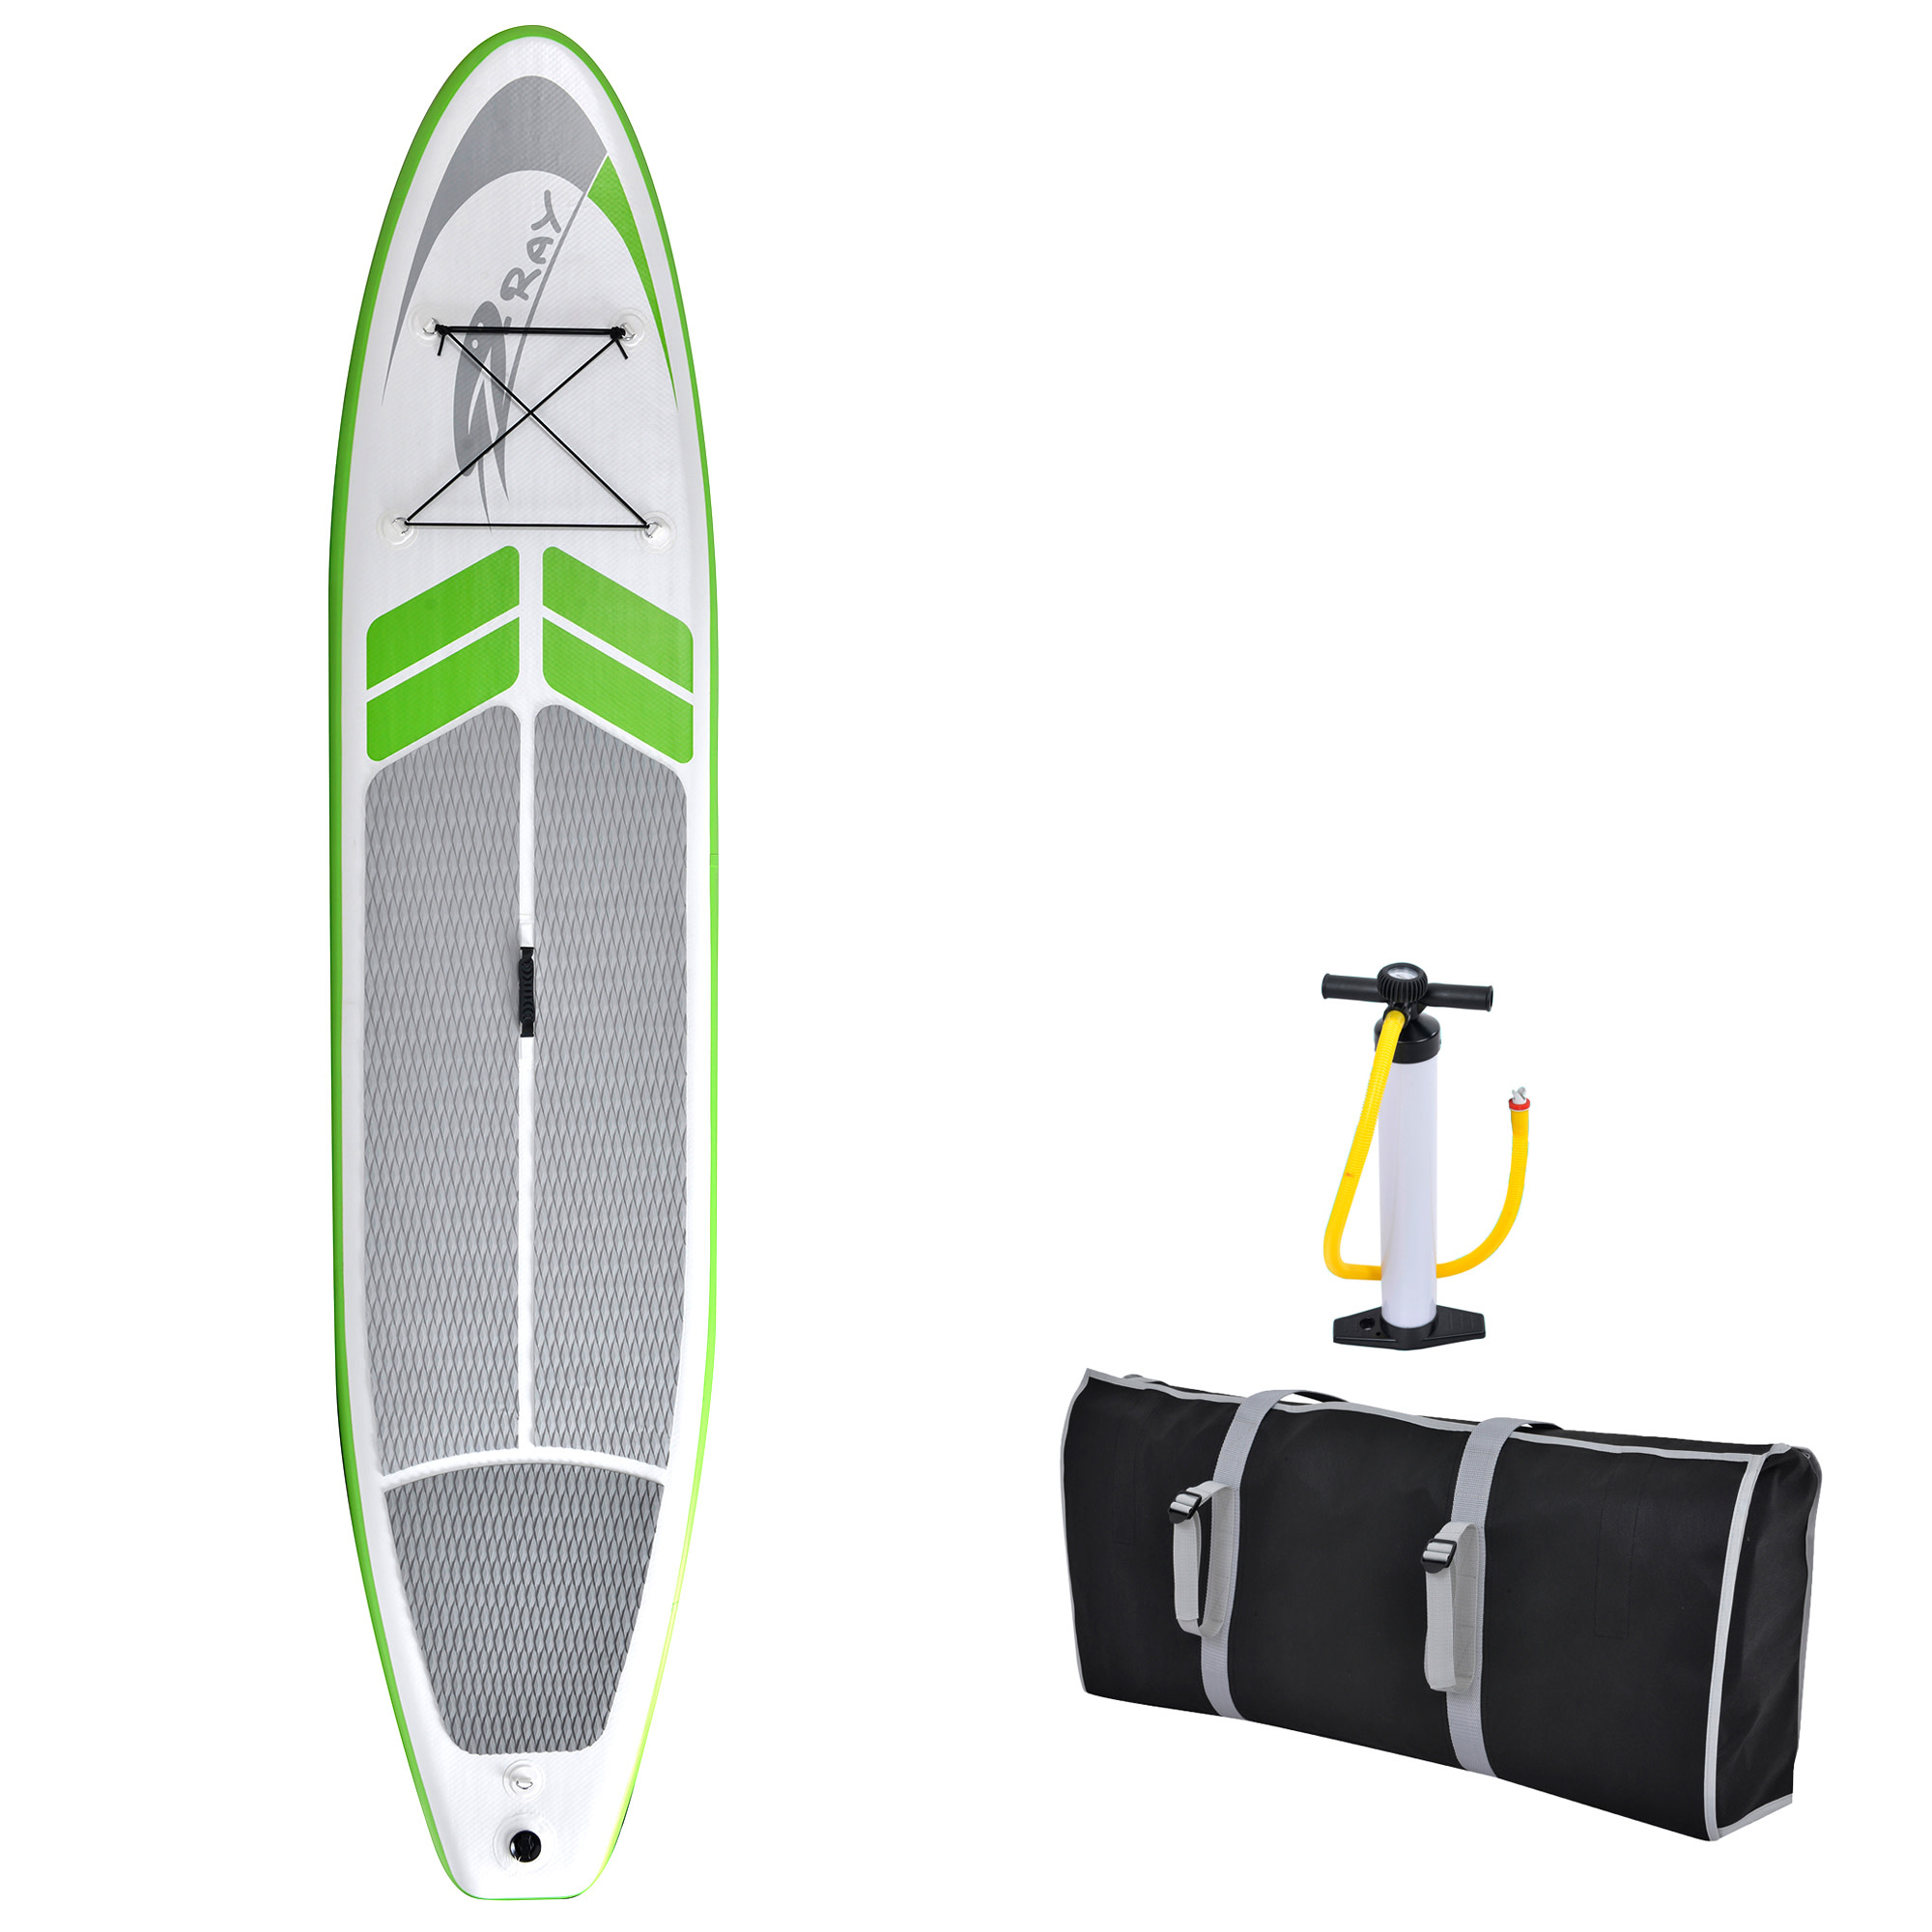 Blue Wave Sports Manta Ray 12-ft Inflatable Stand Up Paddleboard w/ Hand Pump